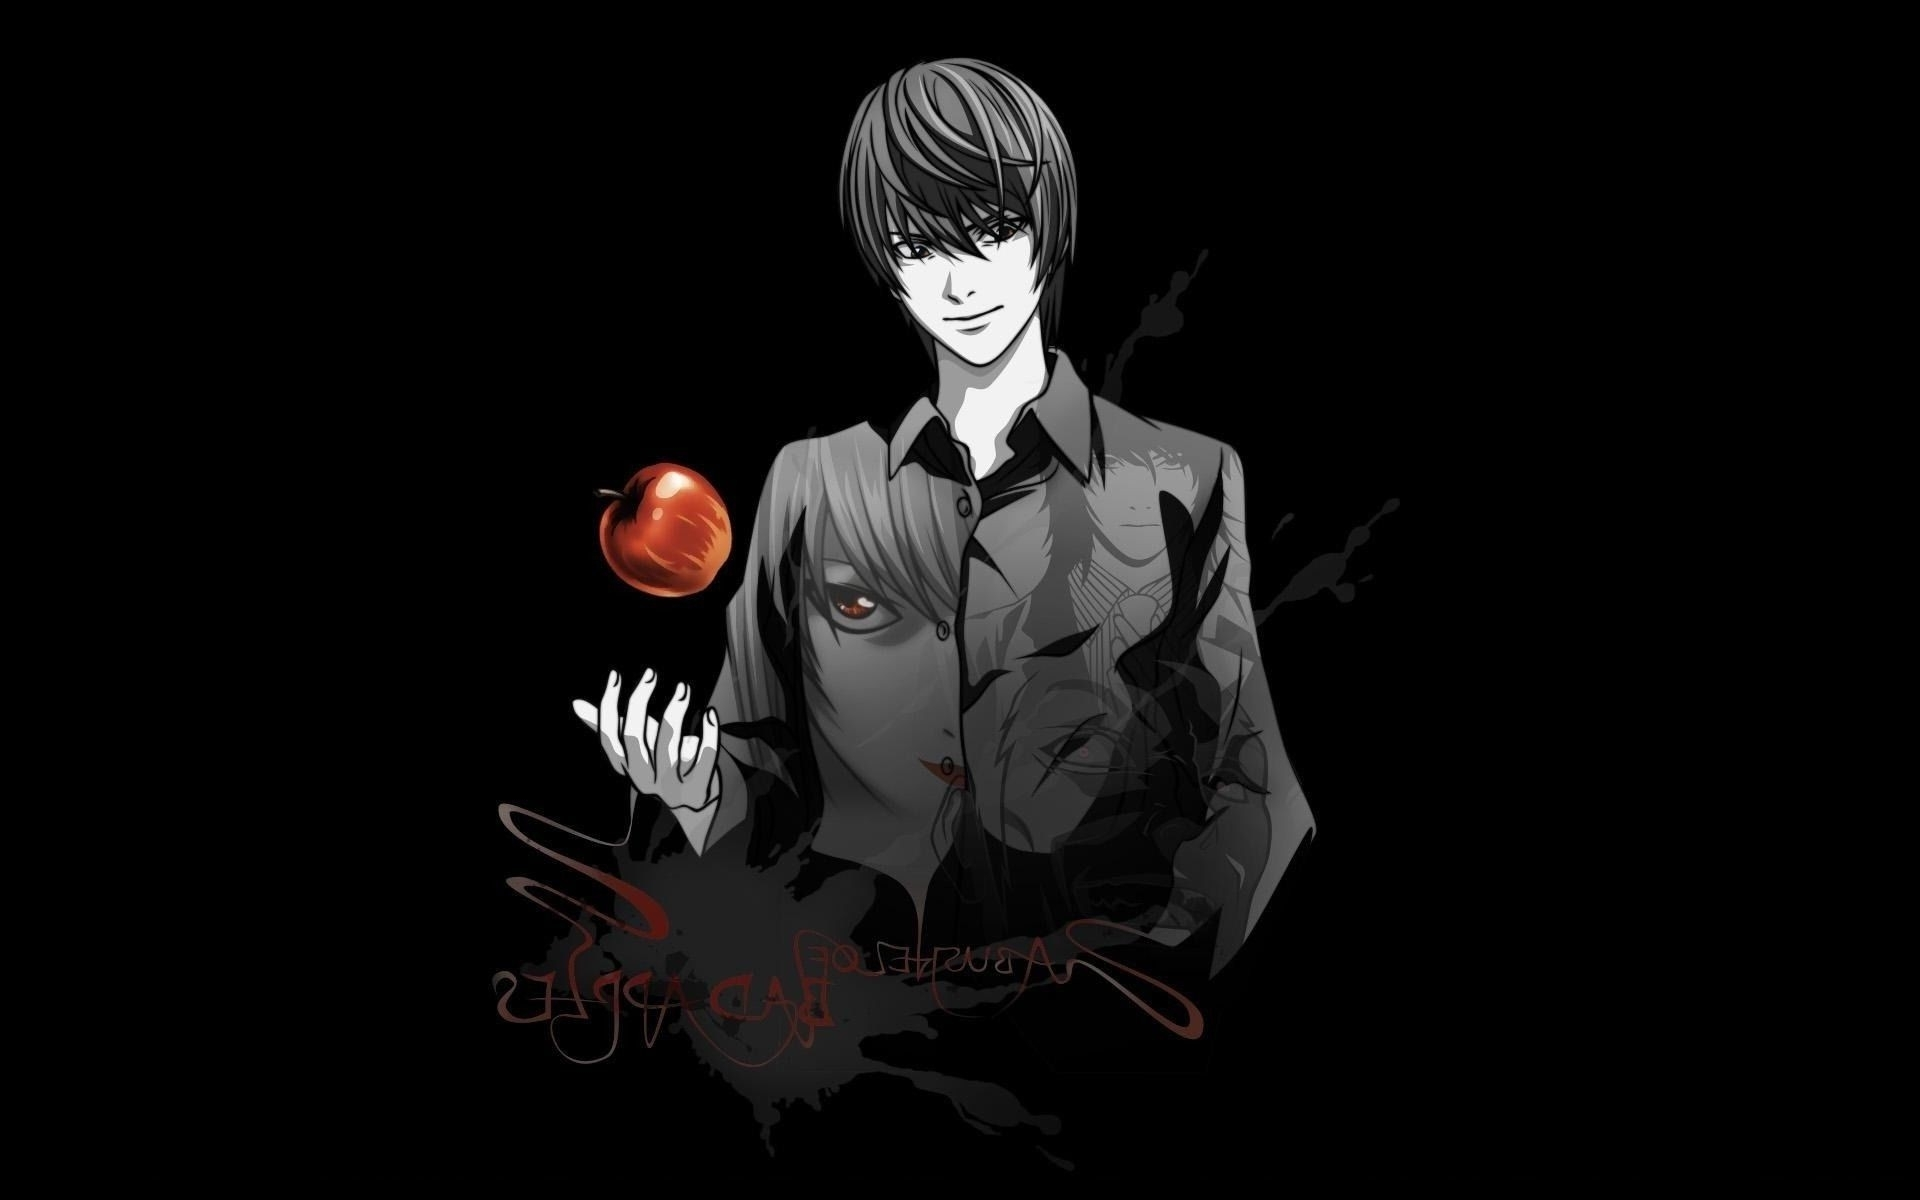 anime kira death note apple death note light kira,. android